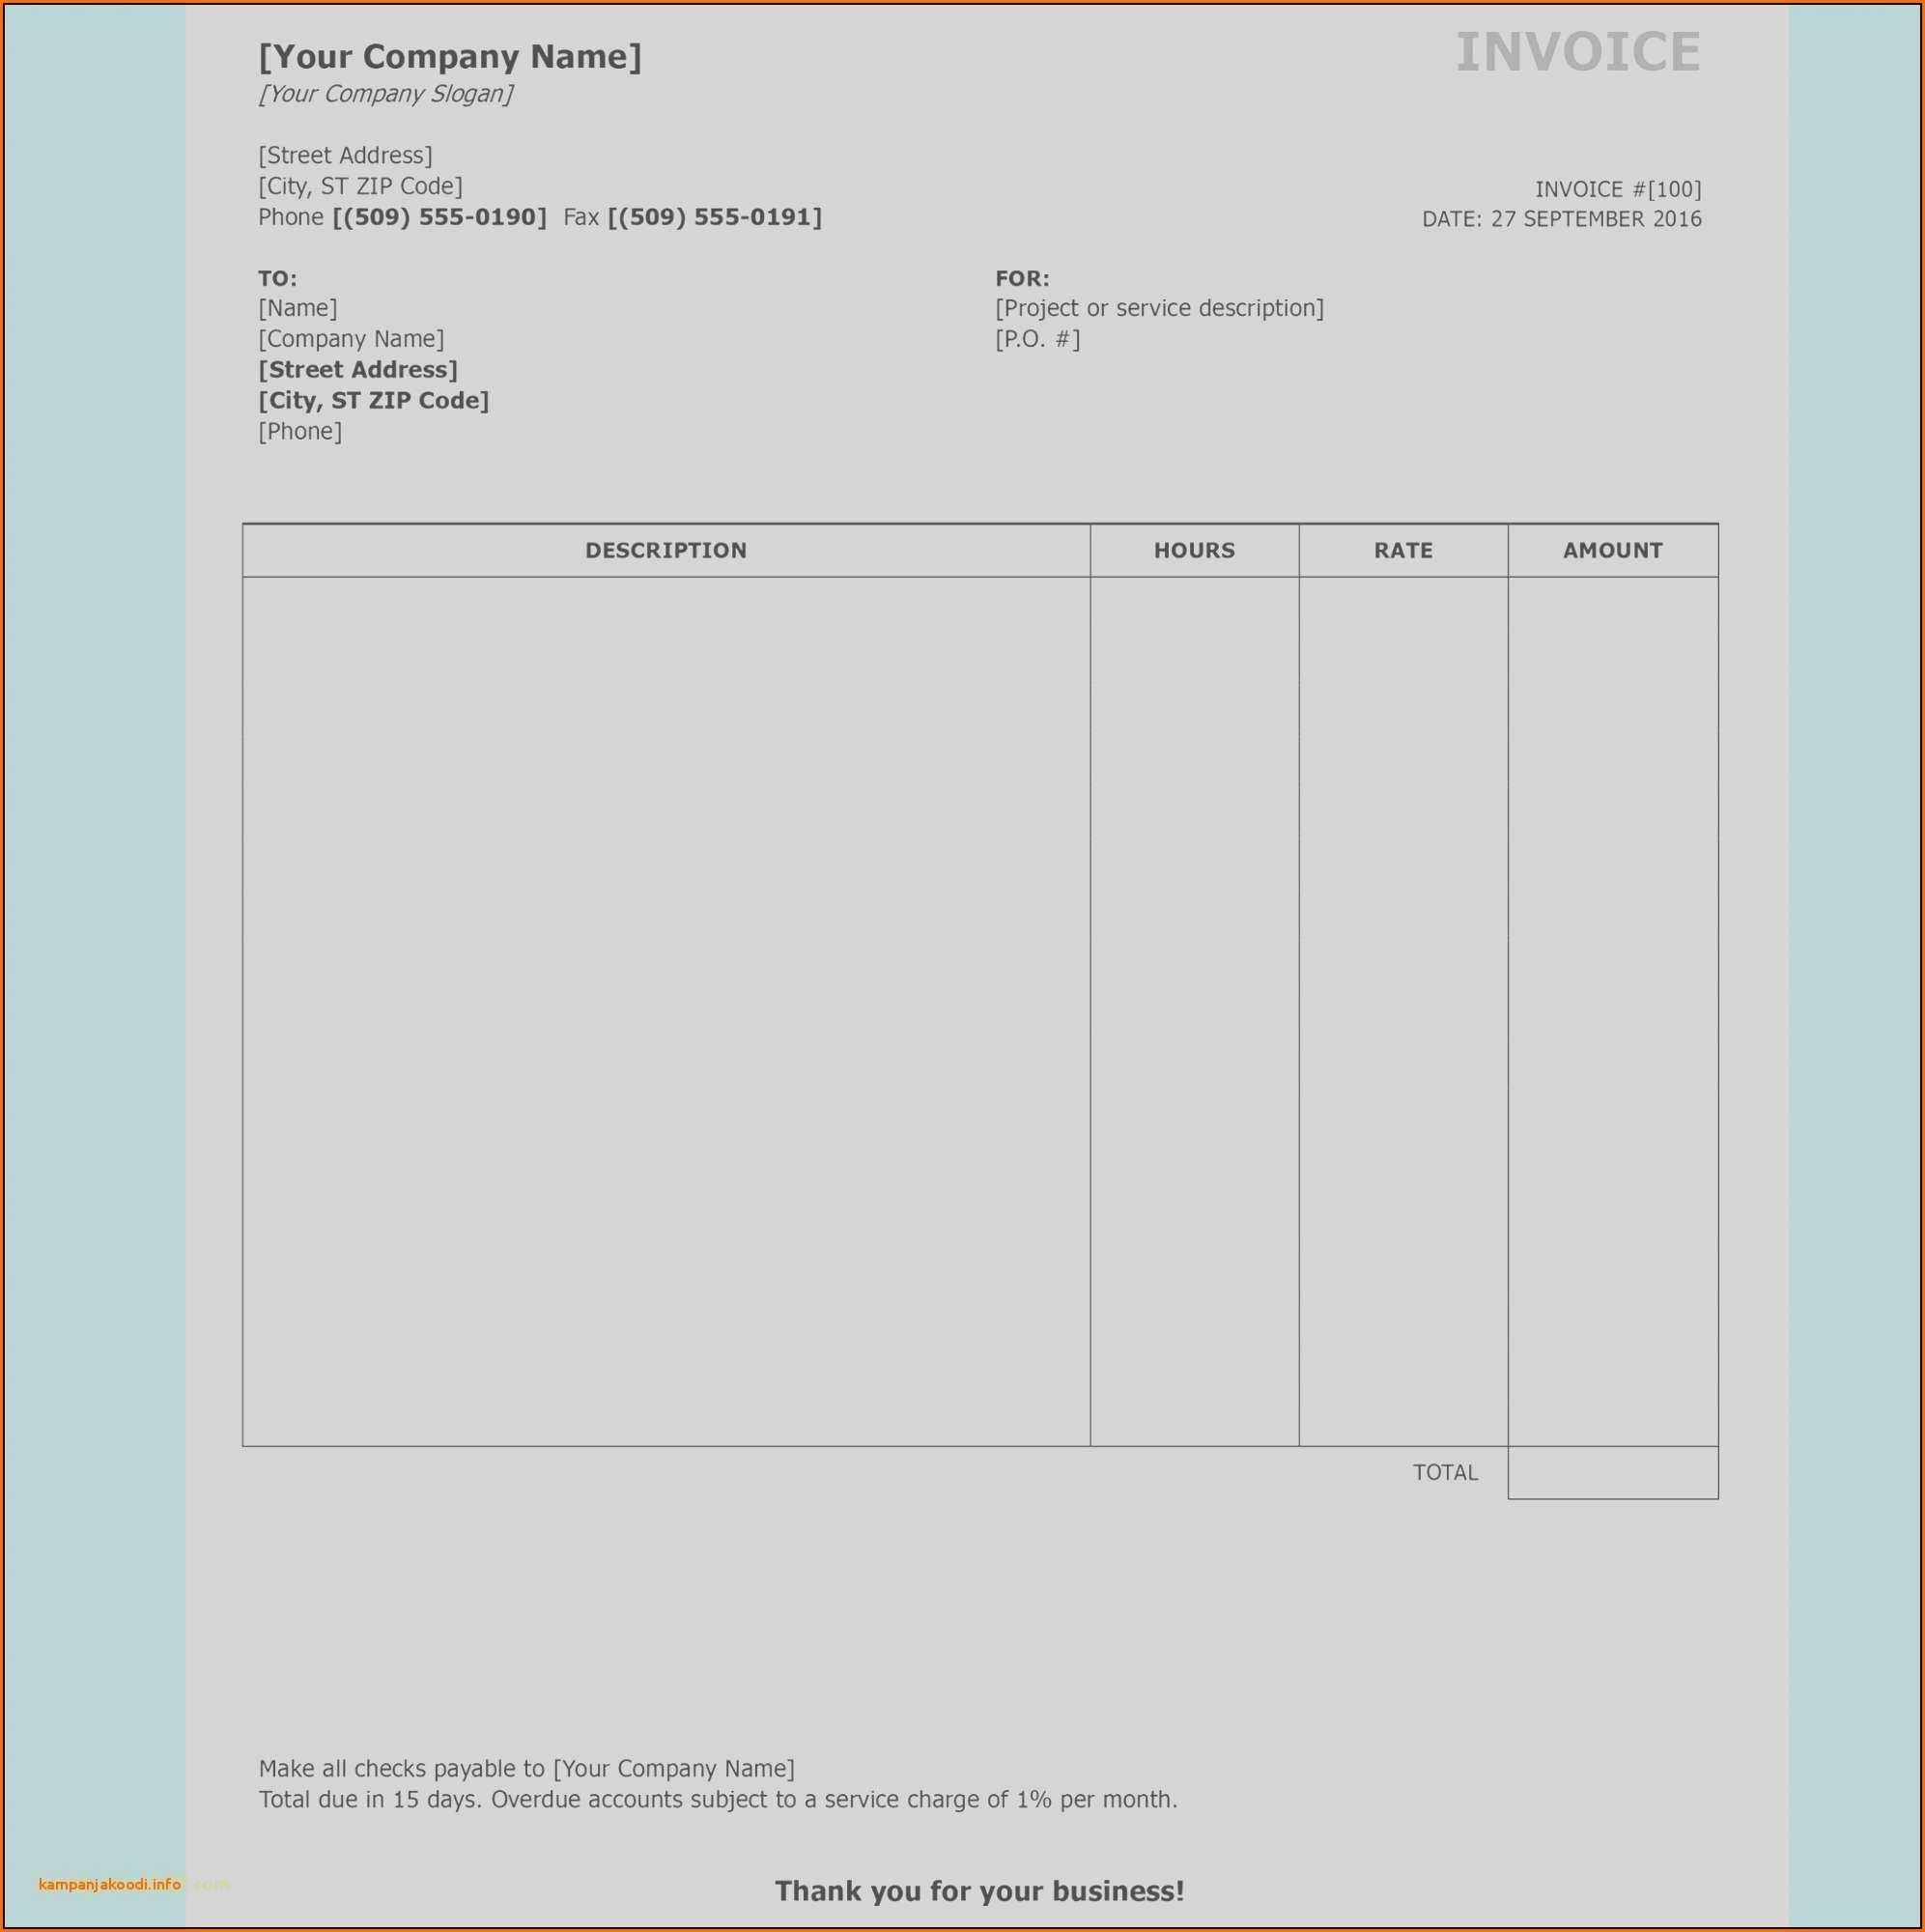 Labor Invoice Template Free And Monthly Bill Spreadsheet Template pertaining to Monthly Bills Template With Account Number And Address